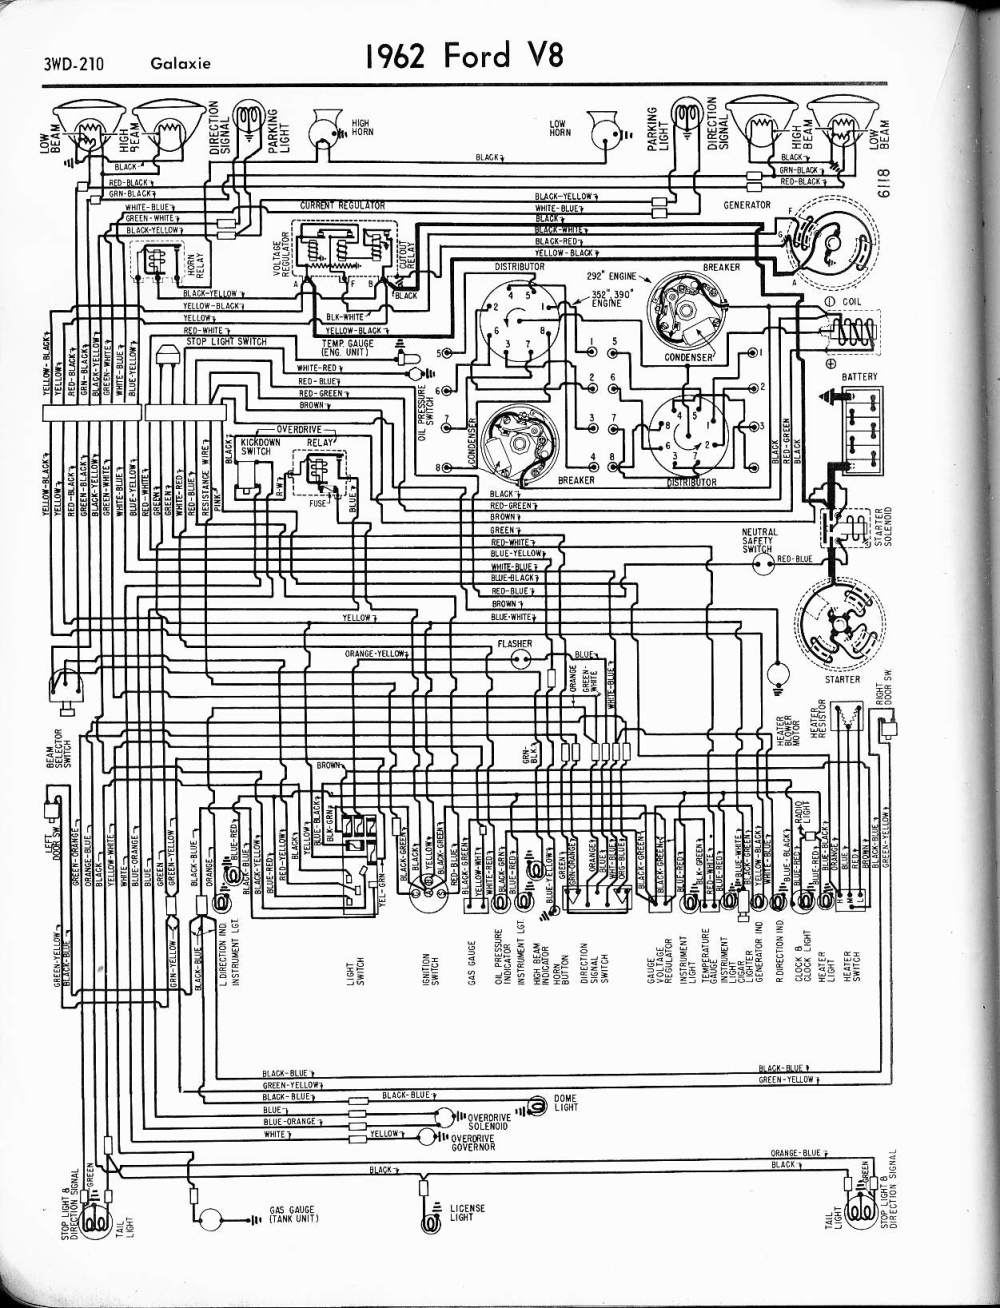 medium resolution of 1962 ford fuse box wiring diagram 1974 ford f100 fuse panel diagram furthermore 1965 thunderbird wiring